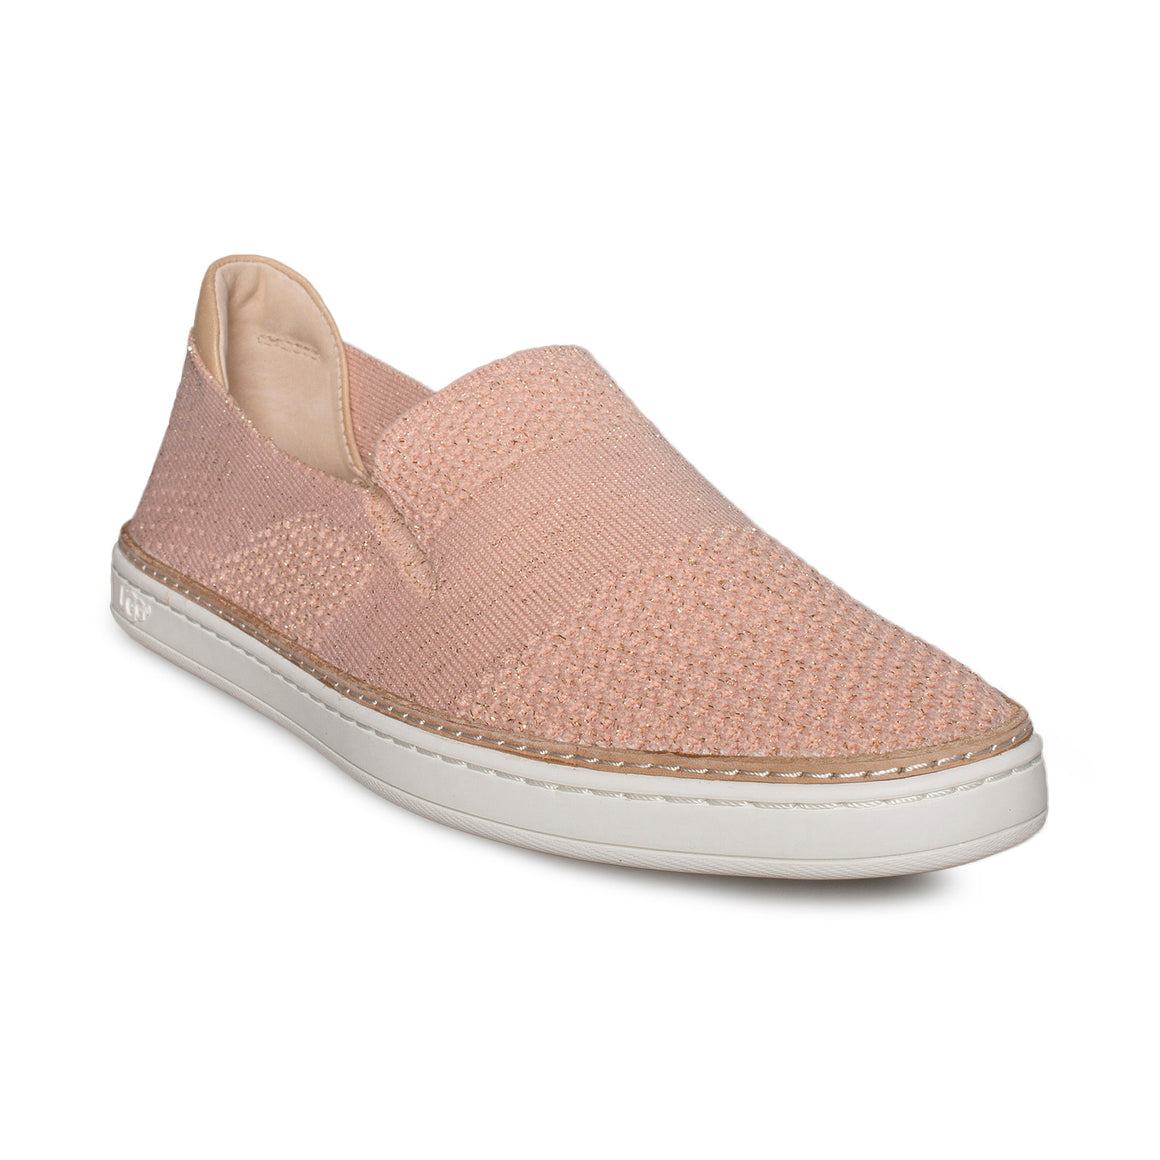 UGG Sammy Tropical Peach Shoes - Women's